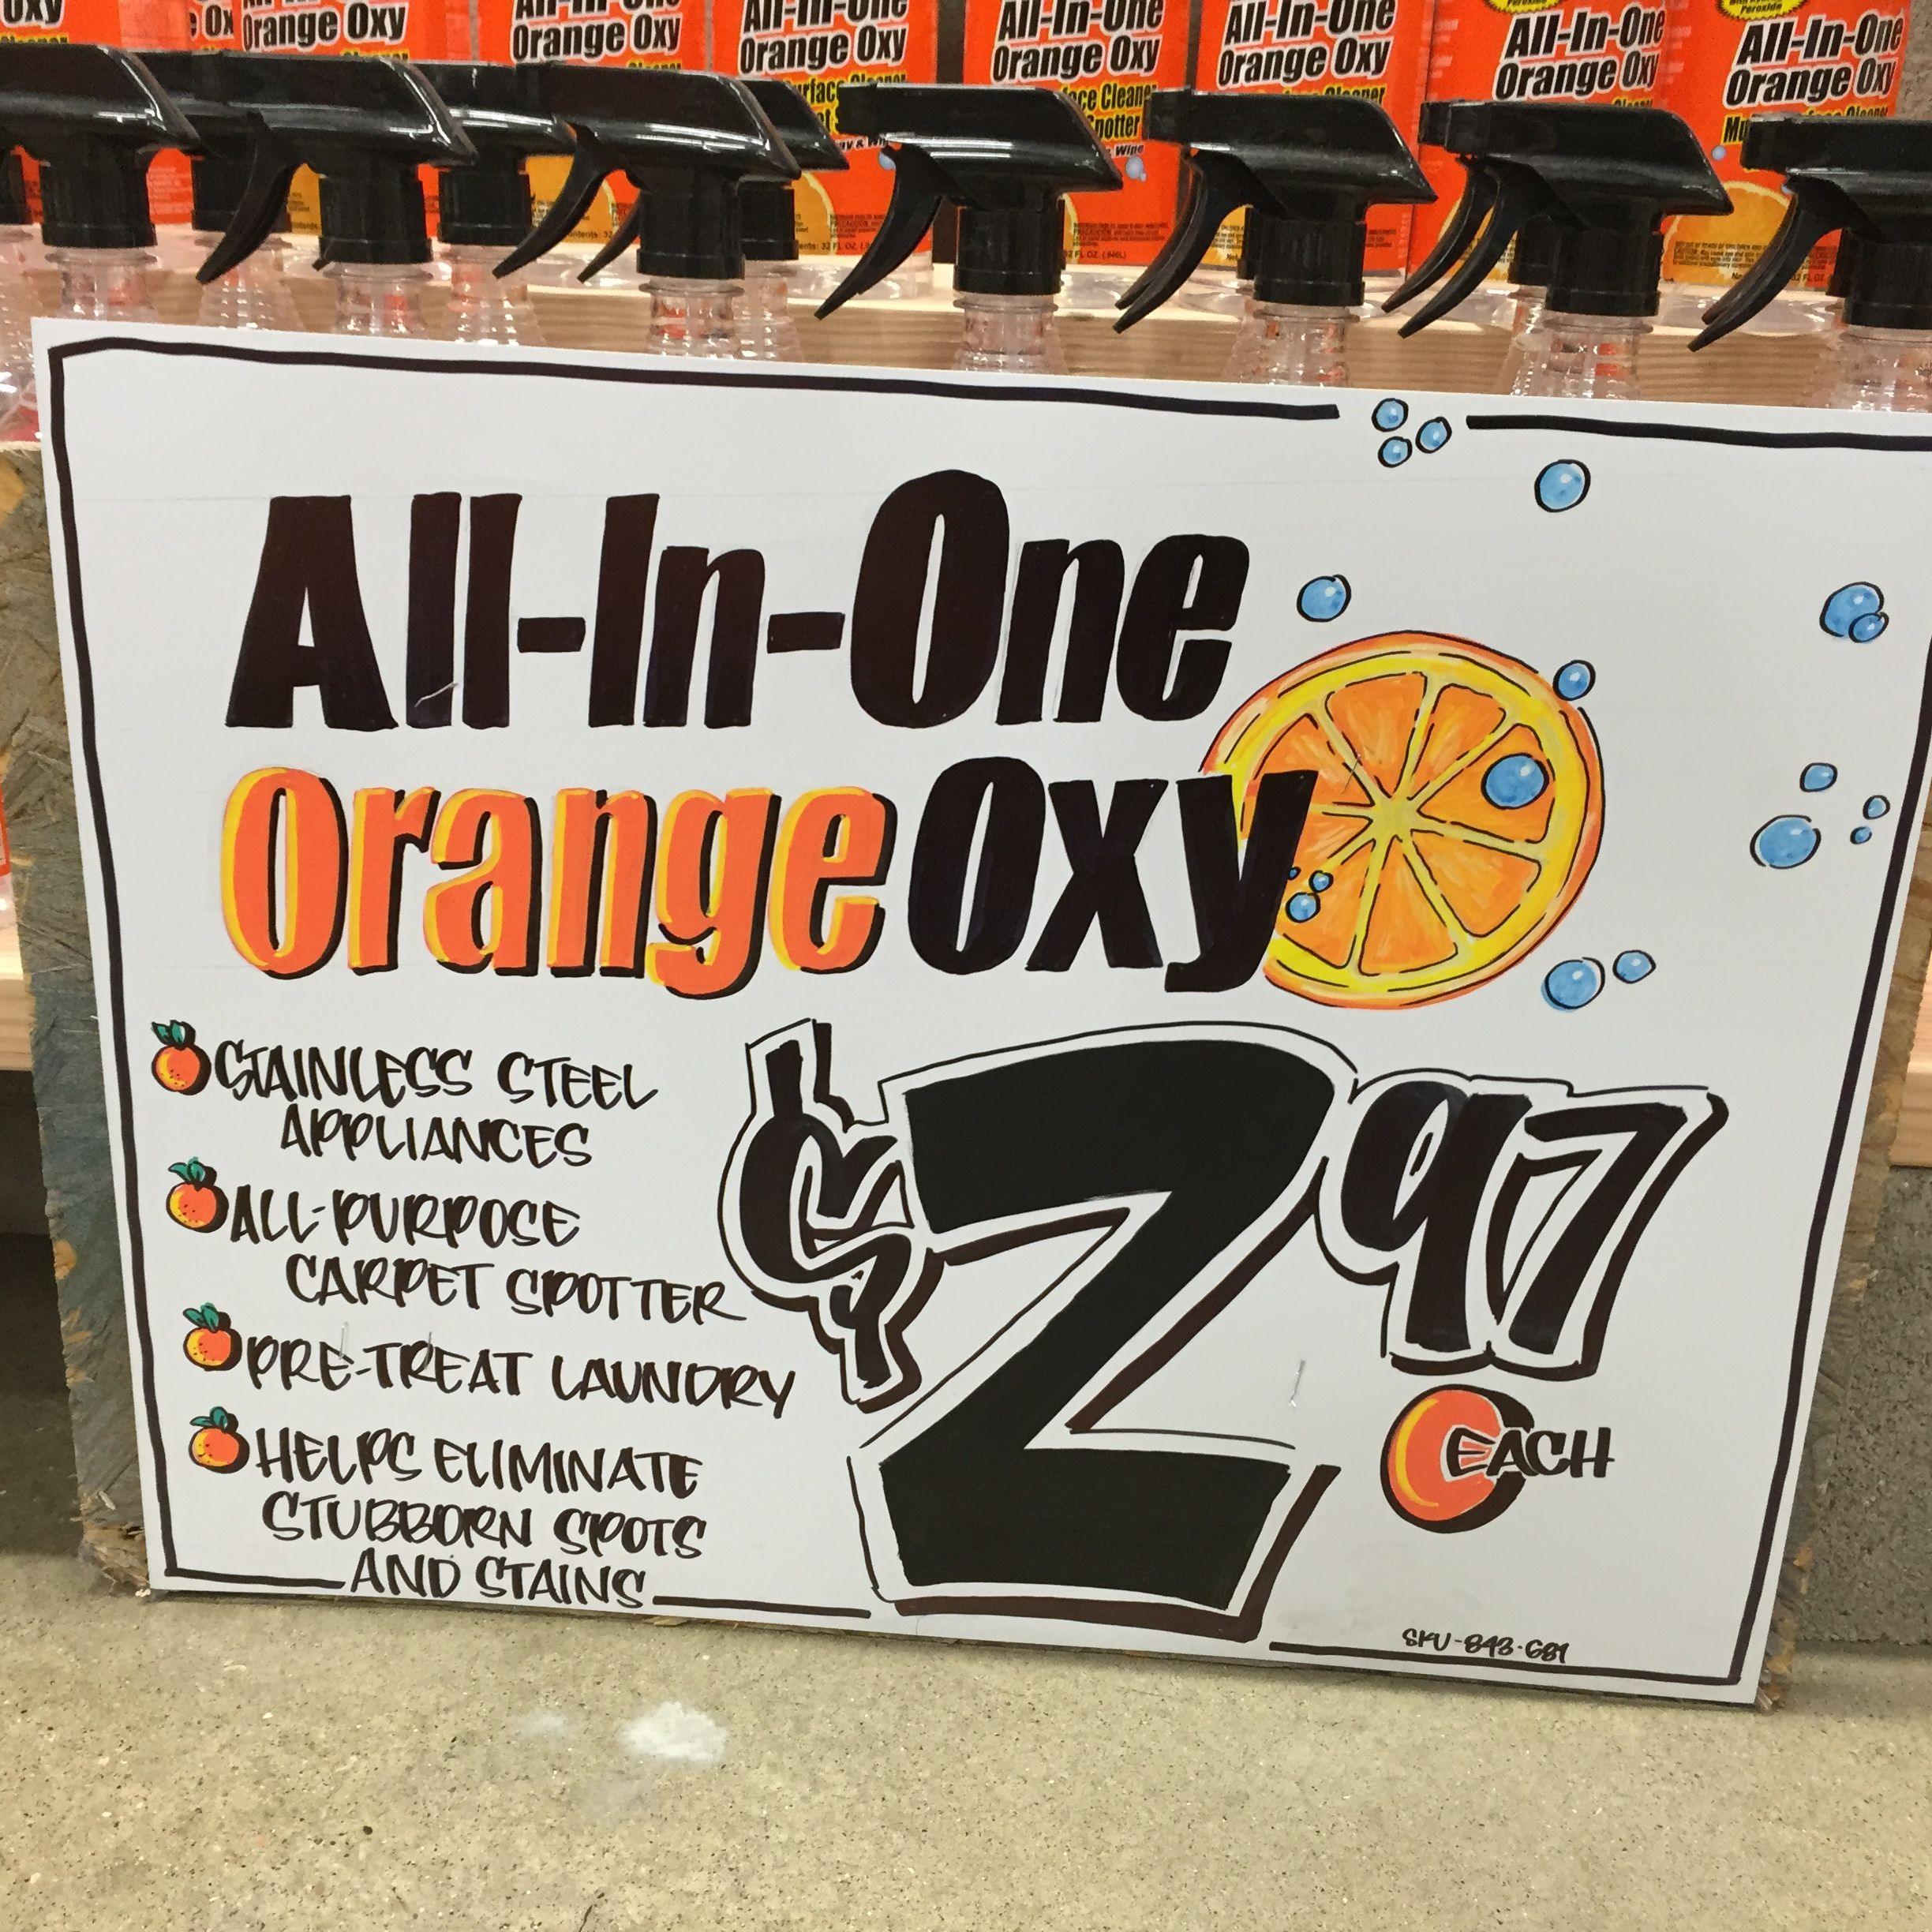 Pin By Bobbi Johnson On Home Depot Signs Home Depot Signs Home Jobs